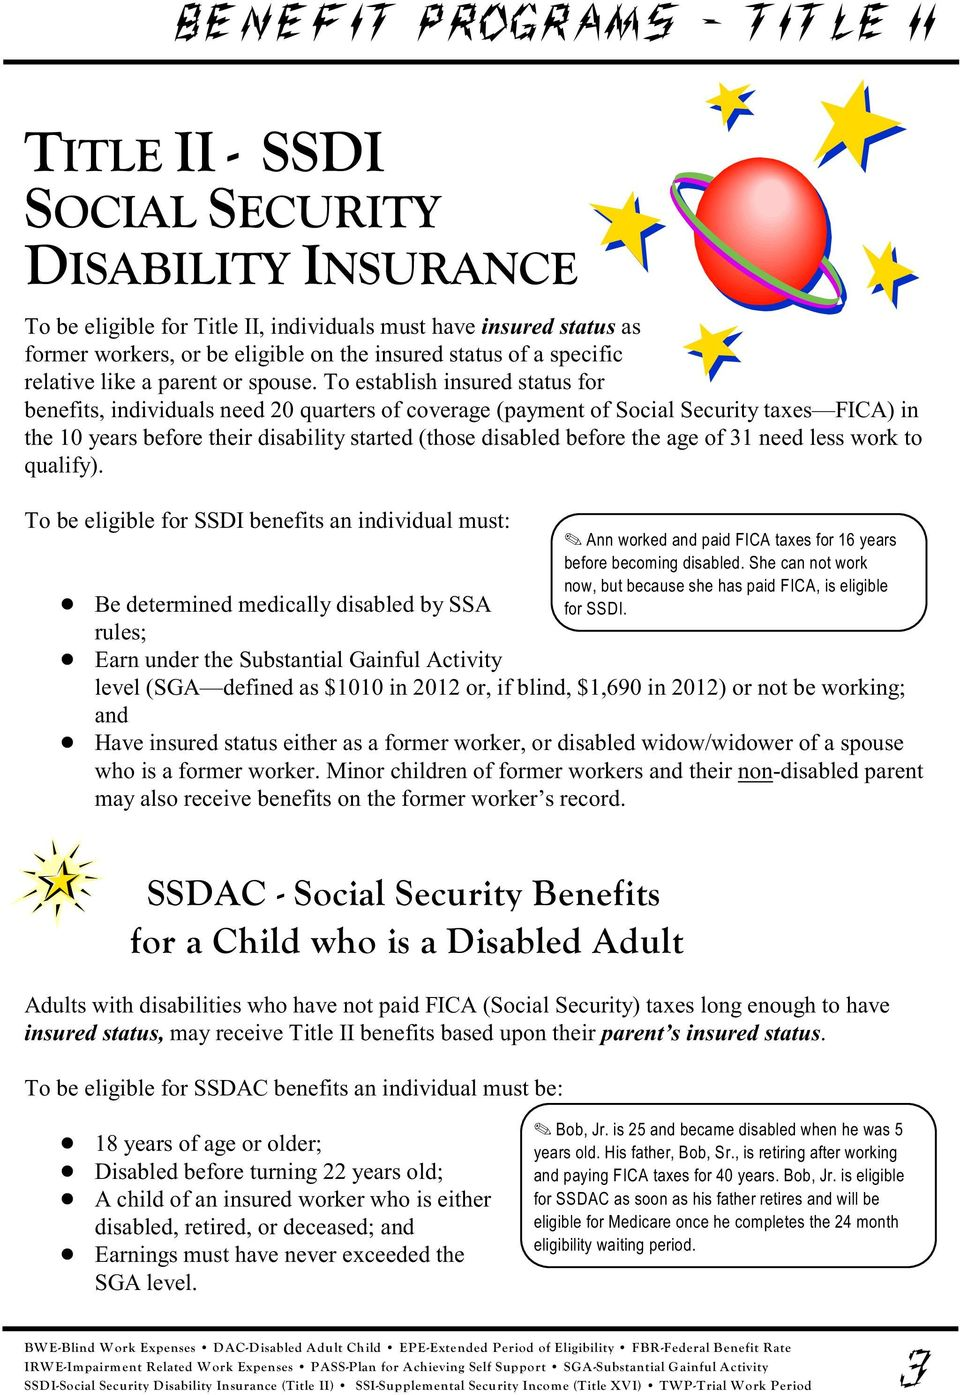 To establish insured status for benefits, individuals need 20 quarters of coverage (payment of Social Security taxes FICA) in the 10 years before their disability started (those disabled before the